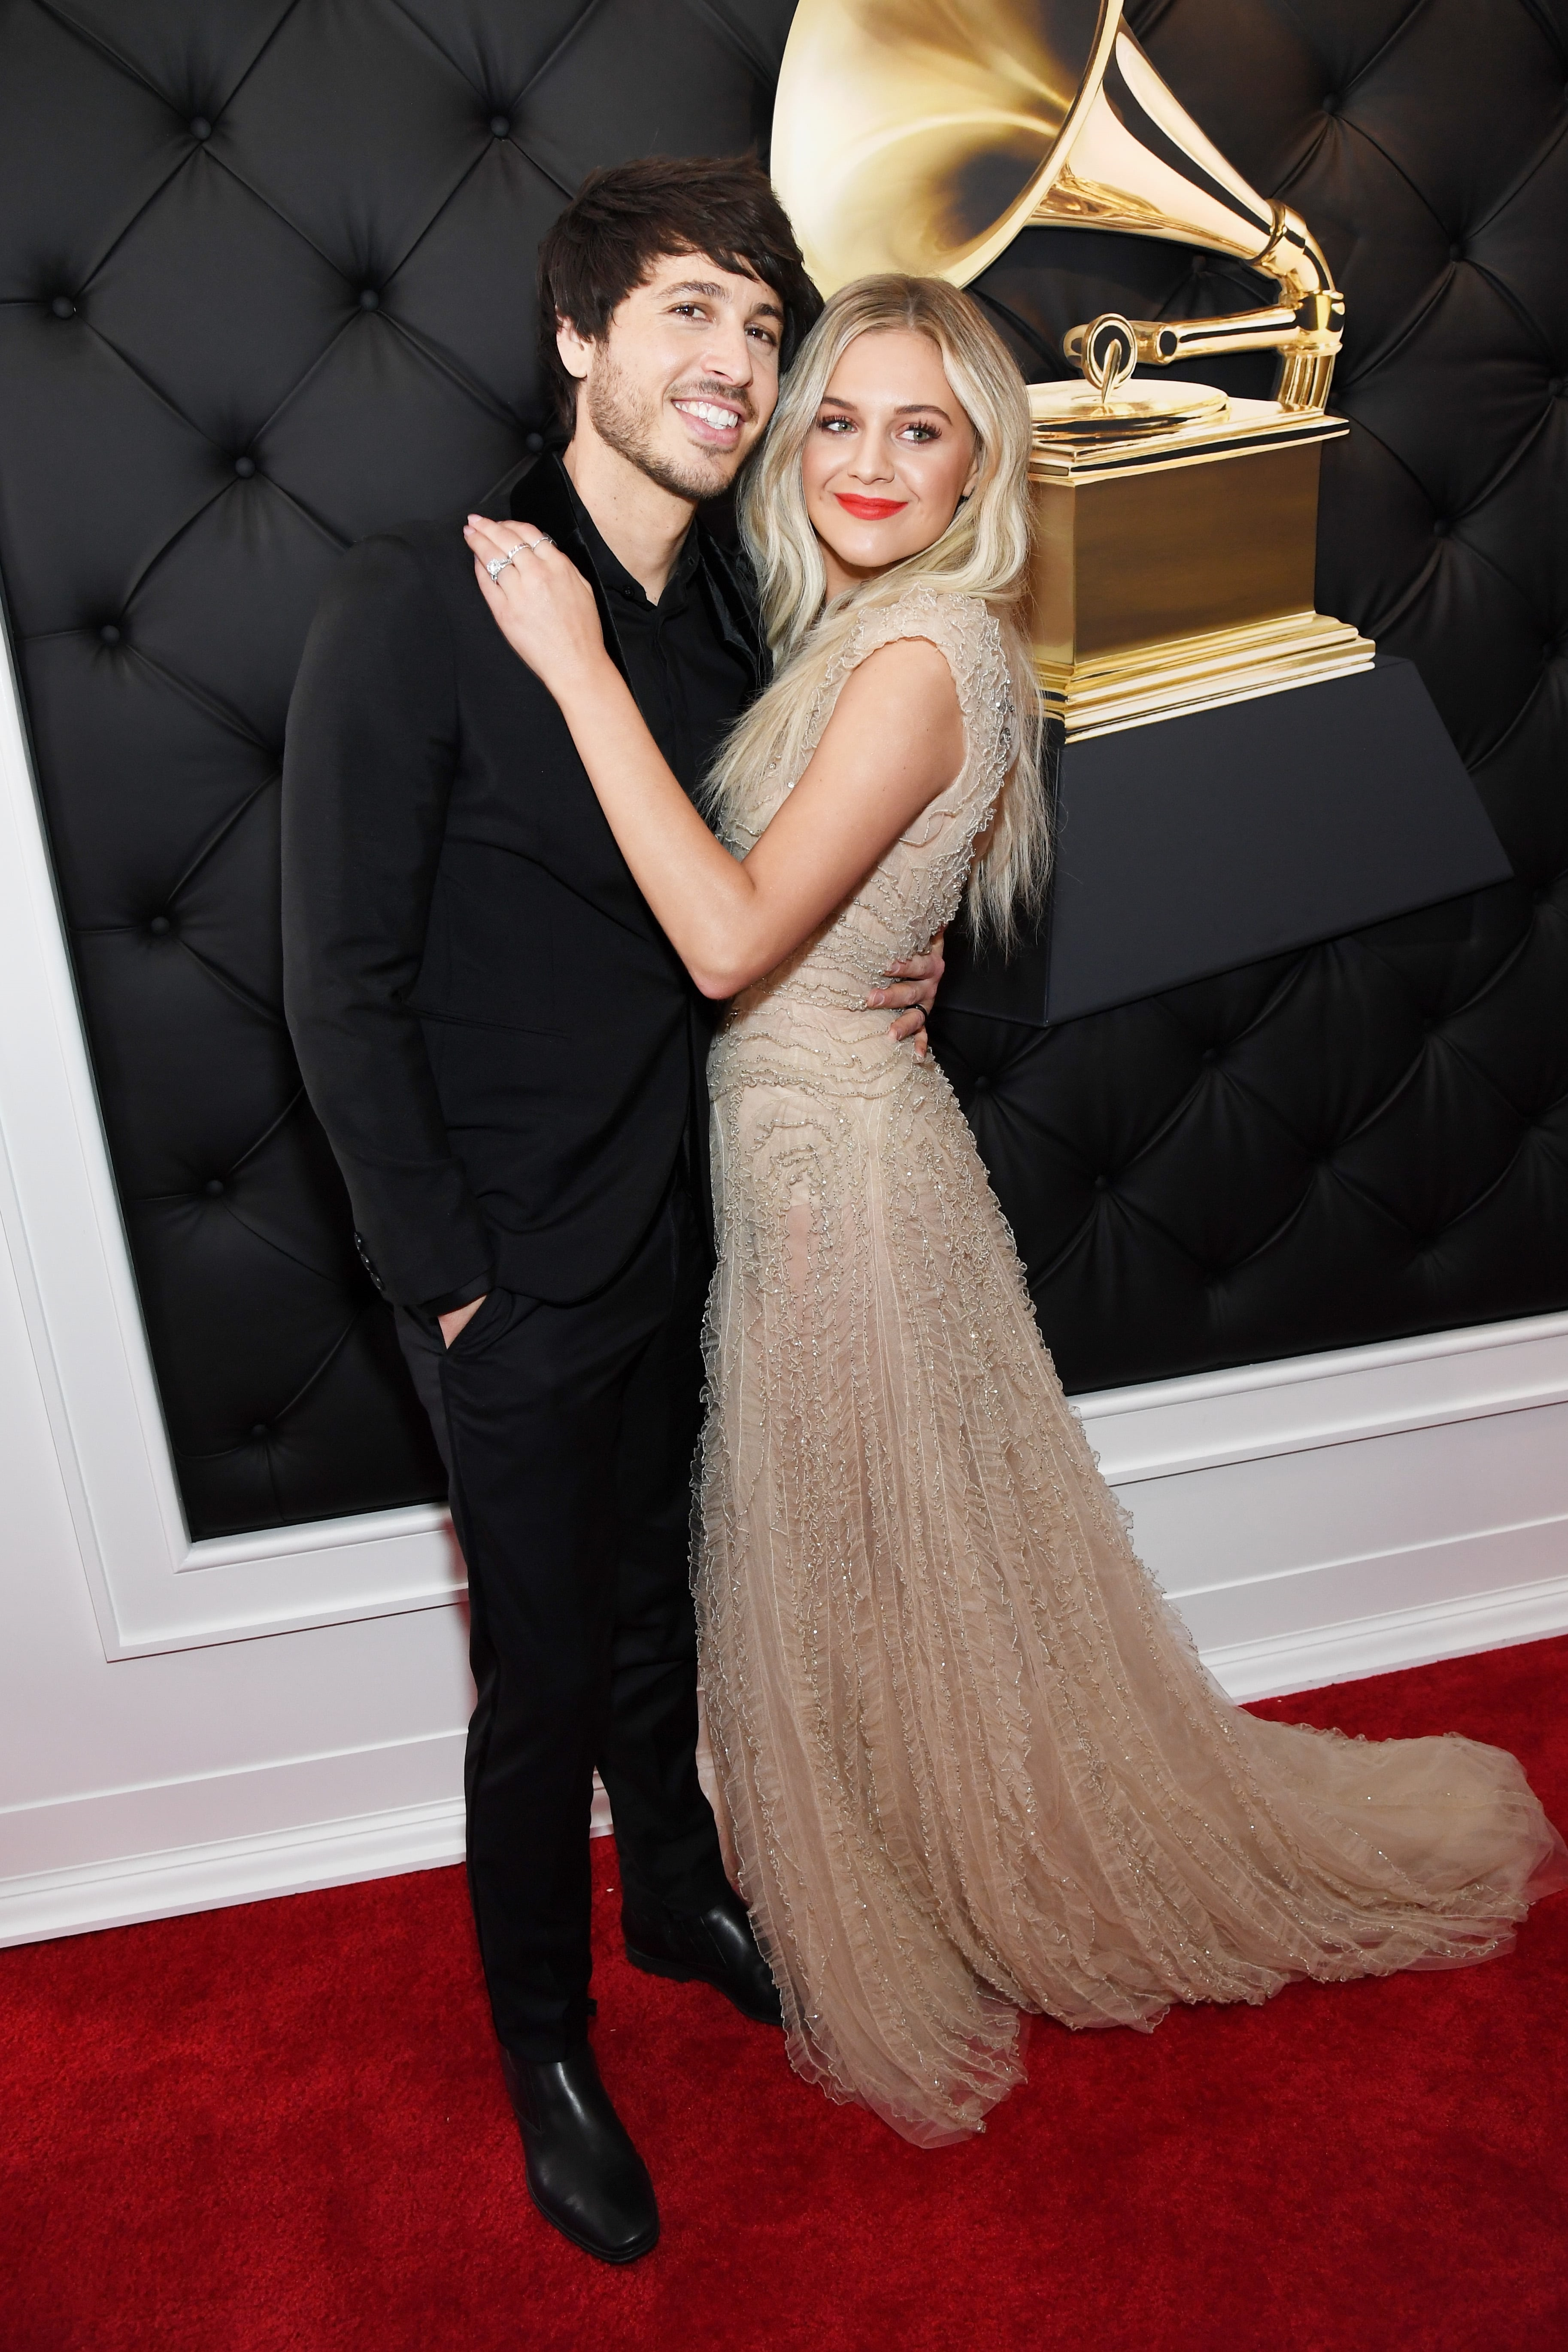 LOS ANGELES, CA - FEBRUARY 10: Morgan Evans (L) and Kelsea Ballerini attend the 61st Annual GRAMMY Awards at Staples Center on February 10, 2019 in Los Angeles, California. (Photo by Kevin Mazur/Getty Images for The Recording Academy)